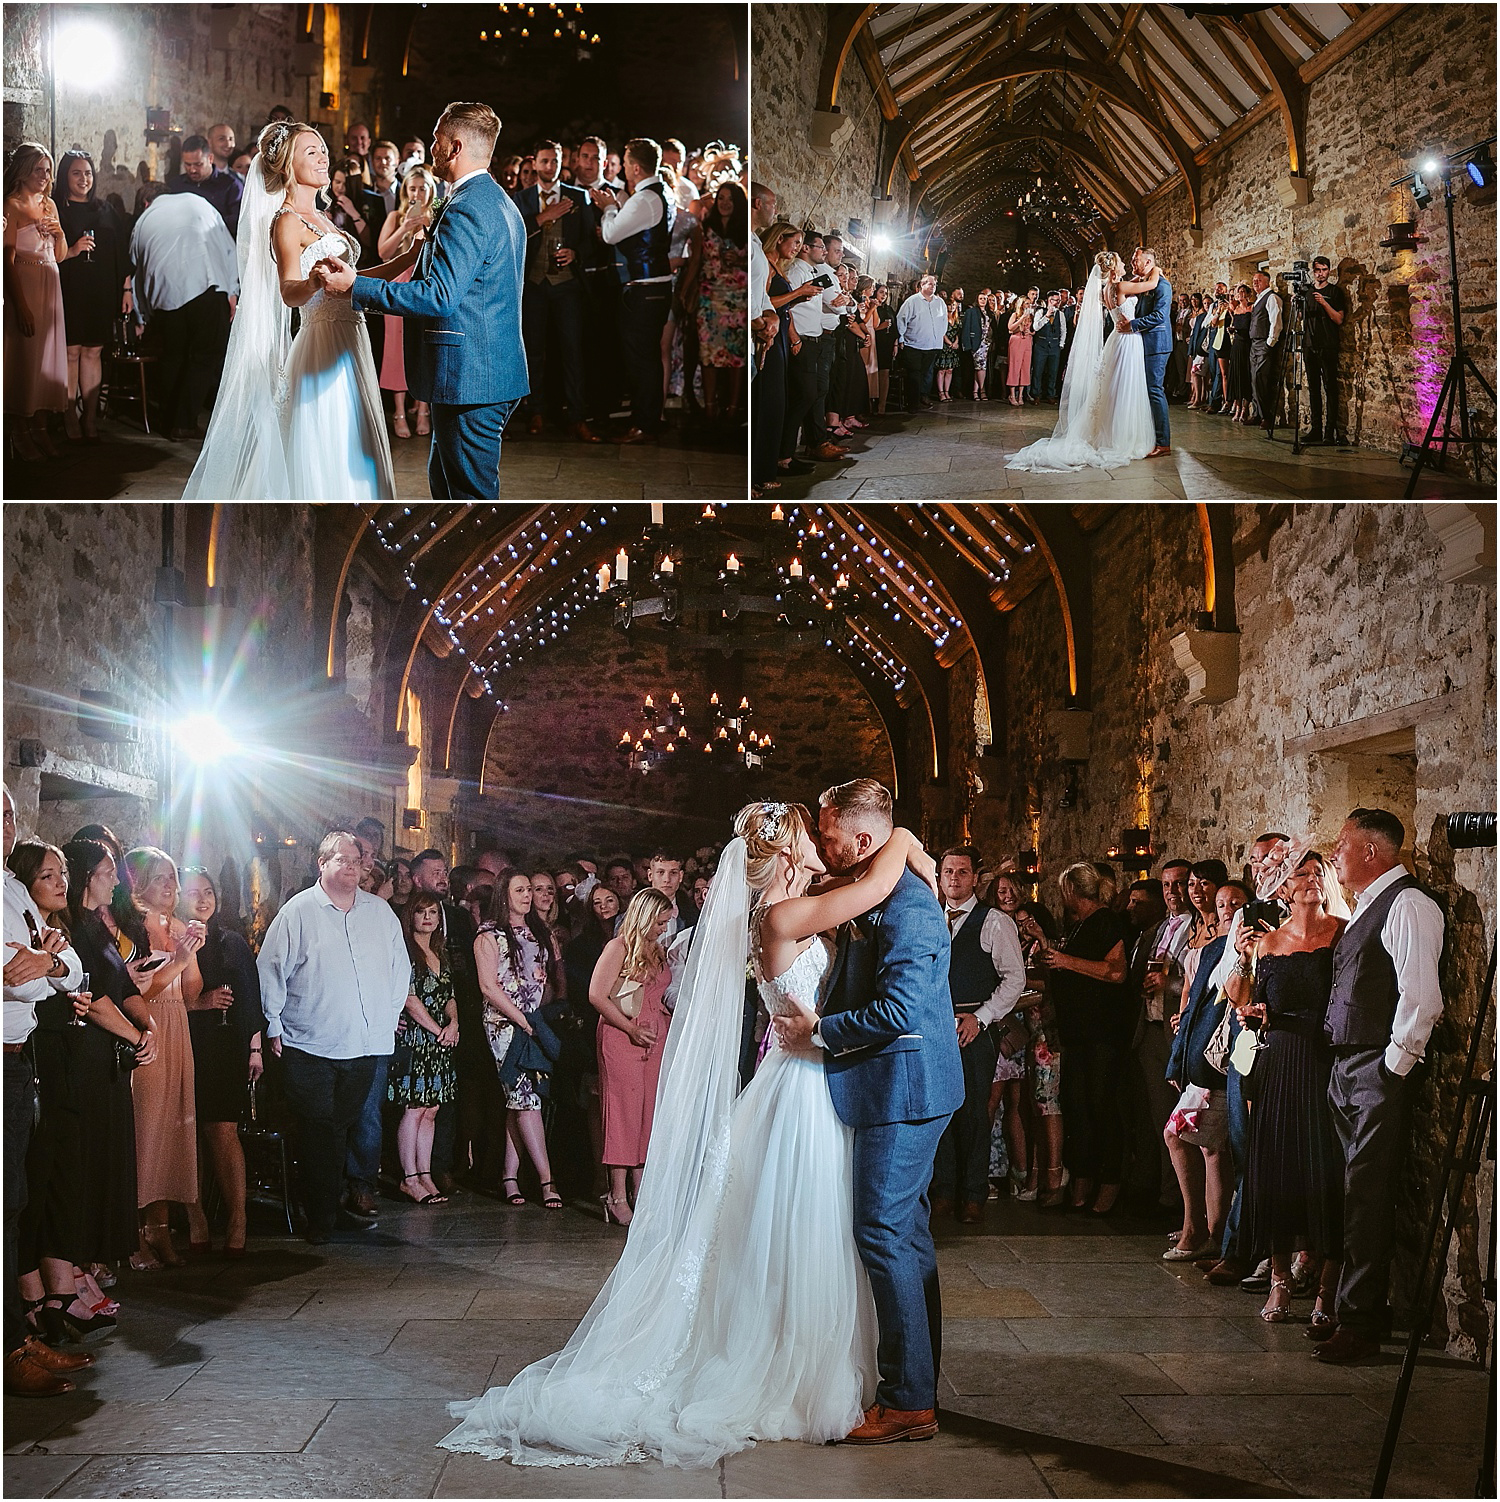 Wedding at Healey Barn - wedding photography by www.2tonephotography.co.uk 097.jpg